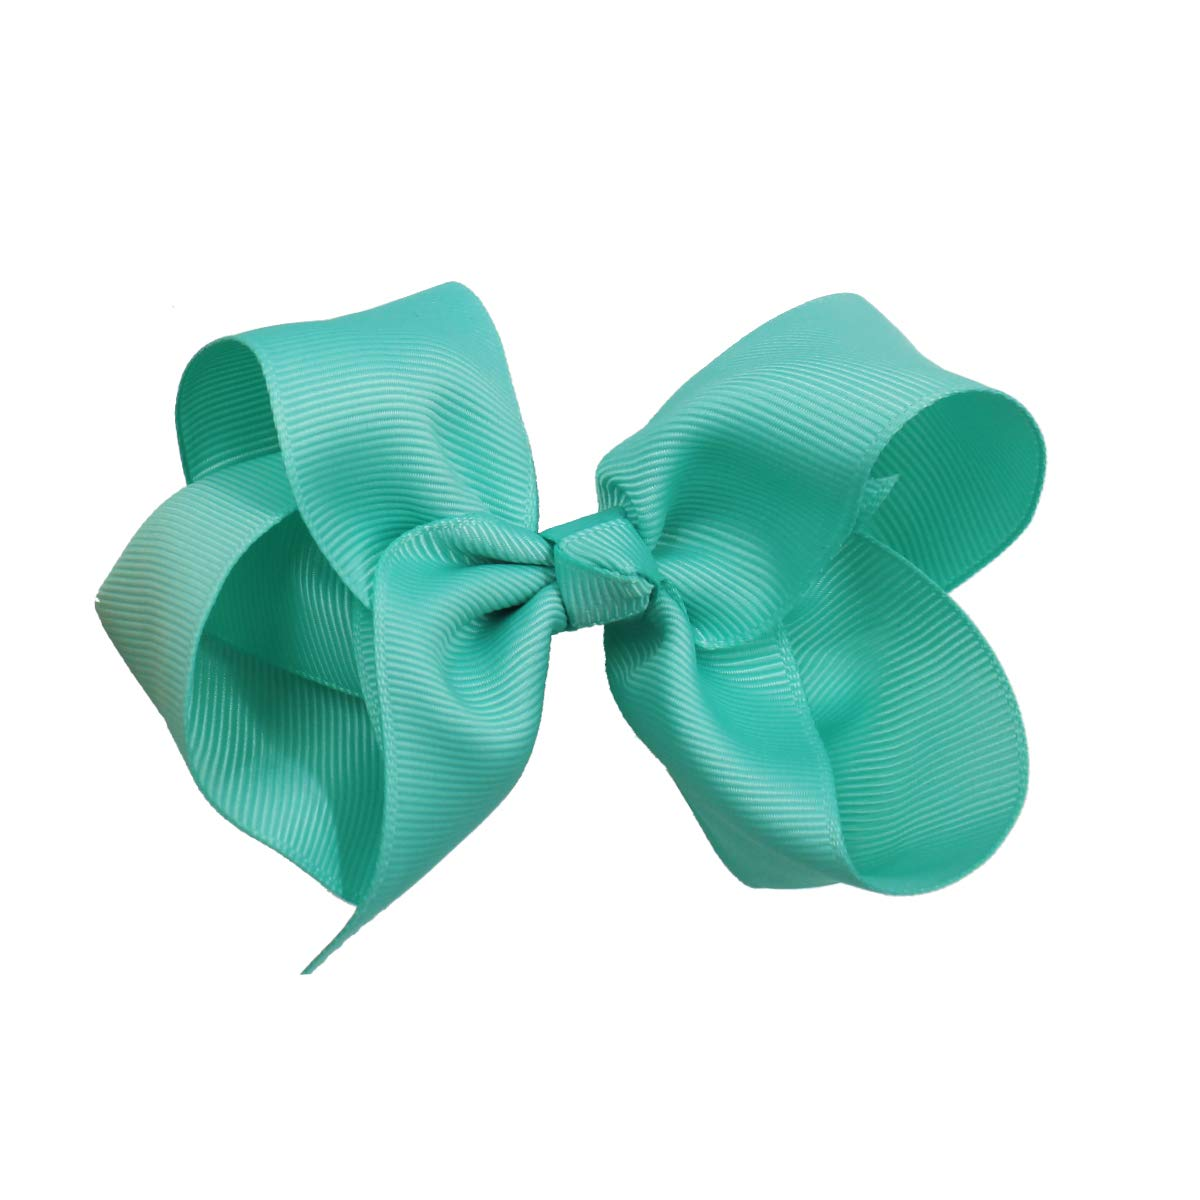 40PCS Hair Bows for Girls 4.5inch Boutique Grosgrain Ribbon Bows Alligator Hair Clips Hair Accessories for Baby Girls Toddlers Kids Children Teens